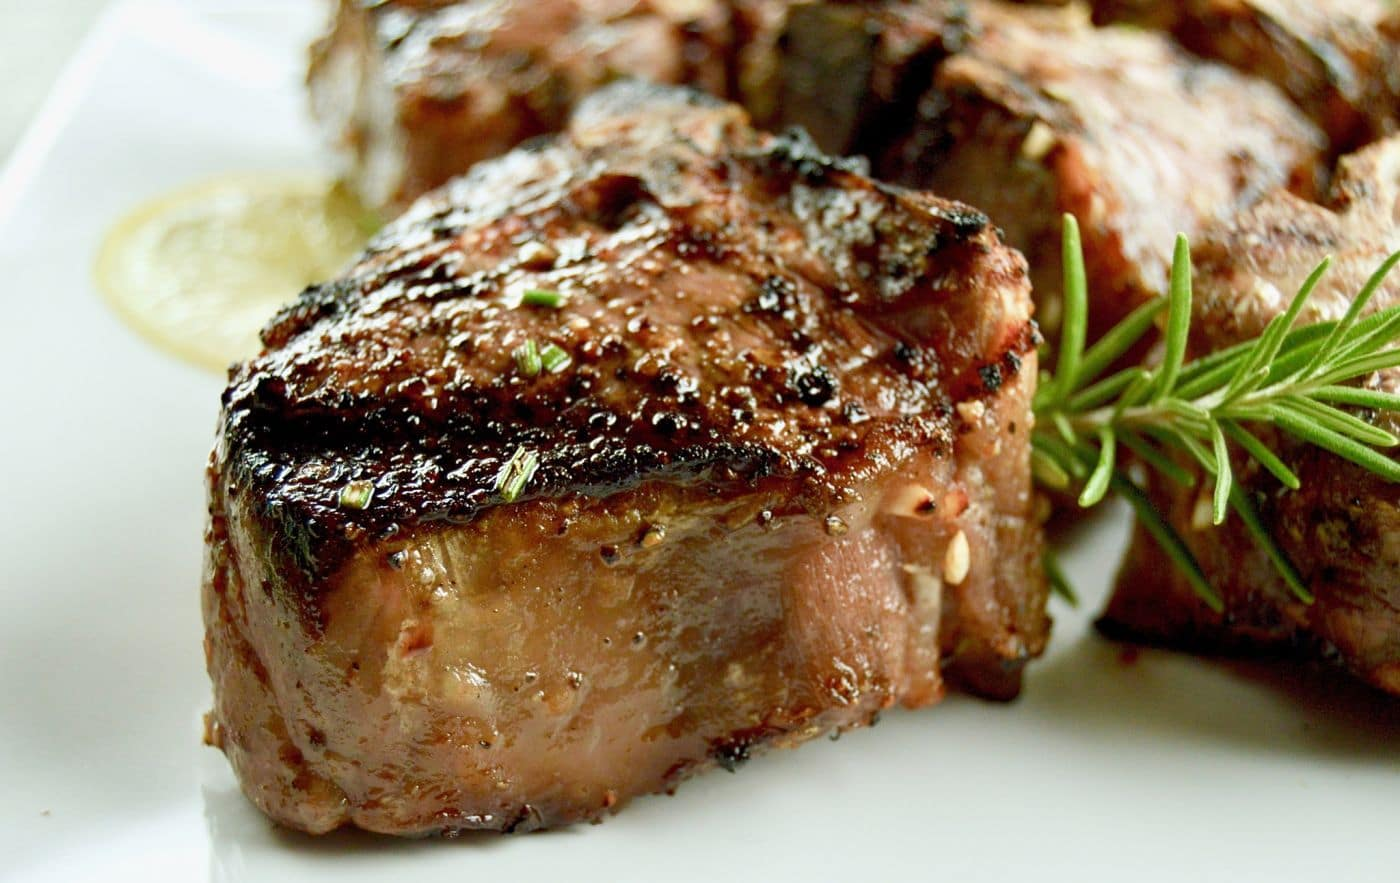 No Fail Grilled Lamb Chops are marinated in rosemary, garlic and citrus for a simple yet elegant meal for entertaining.  Ideal to serve at summer and fall gatherings.